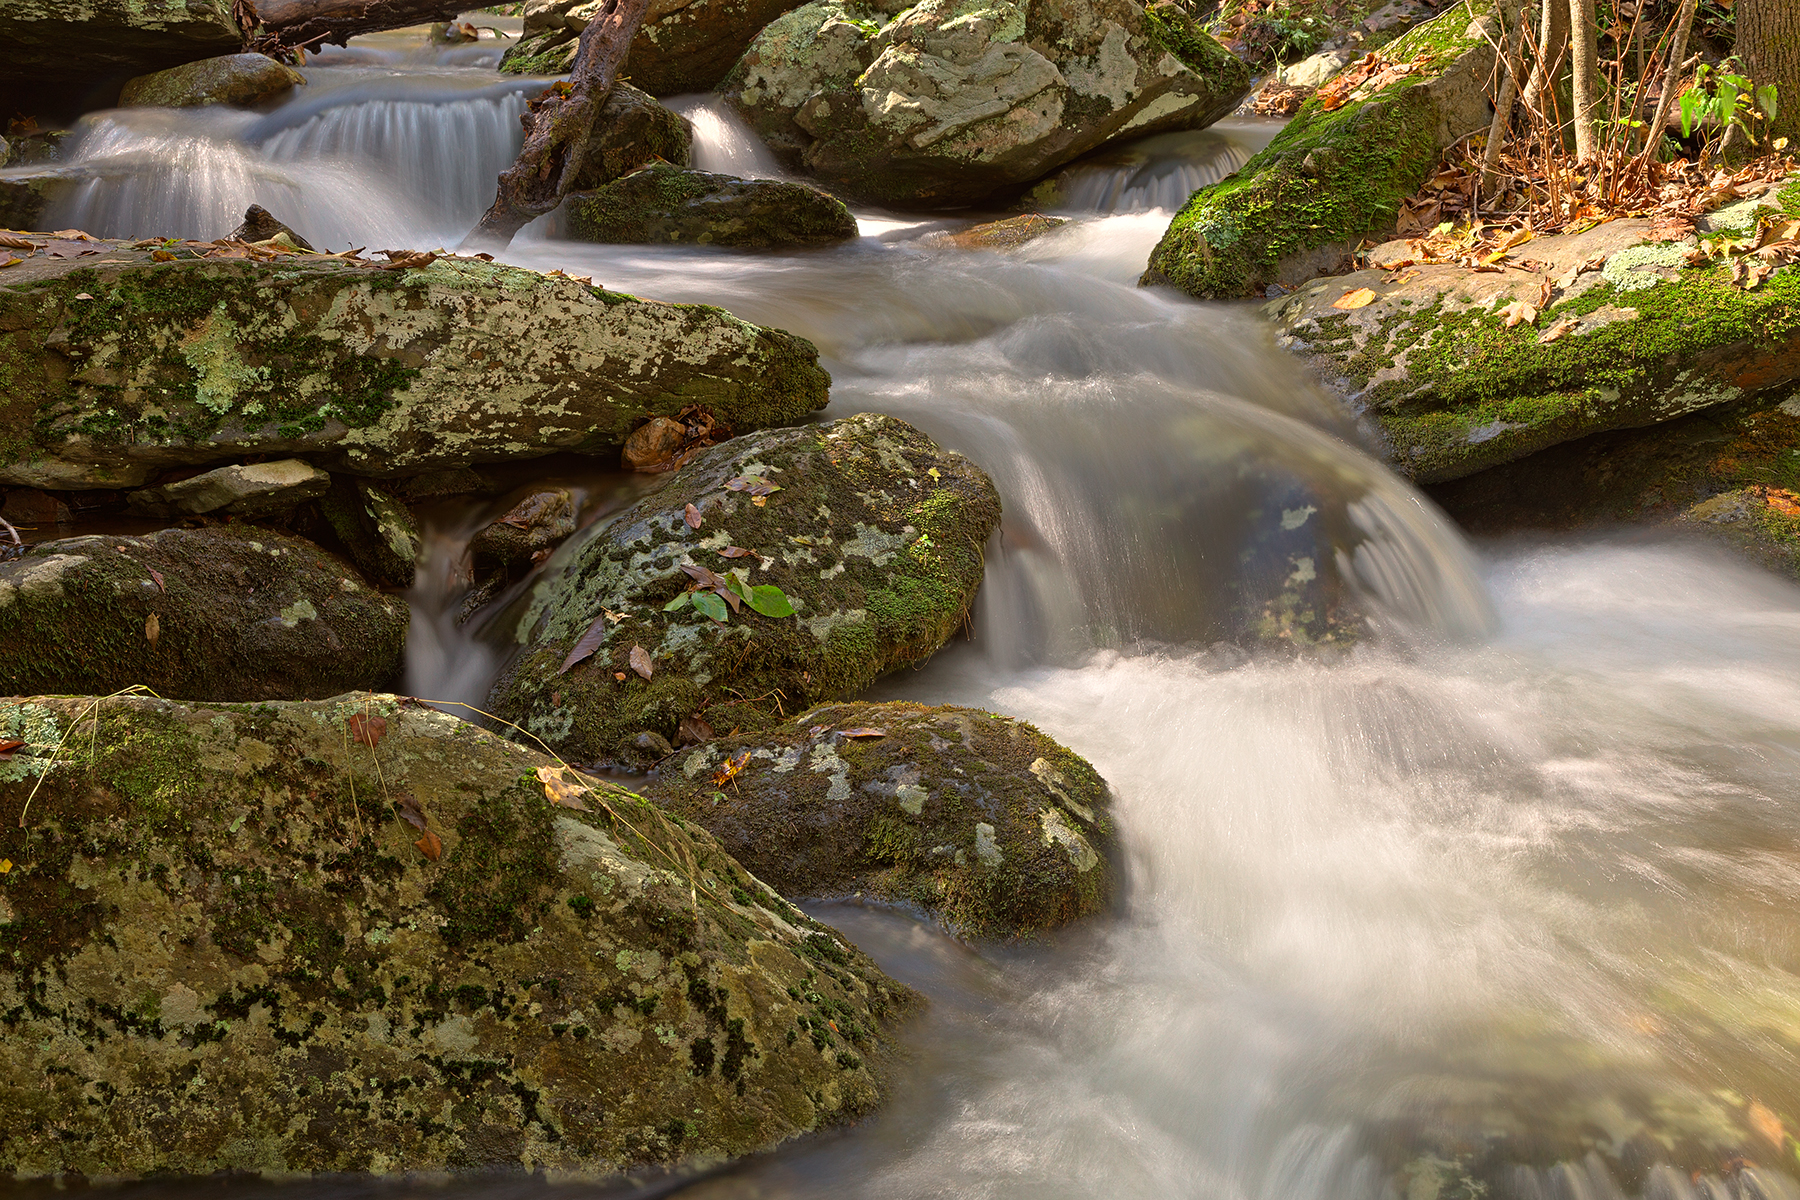 Jones Run Cascading Stream - HDR, America, Quiet, Shade, Serenity, HQ Photo